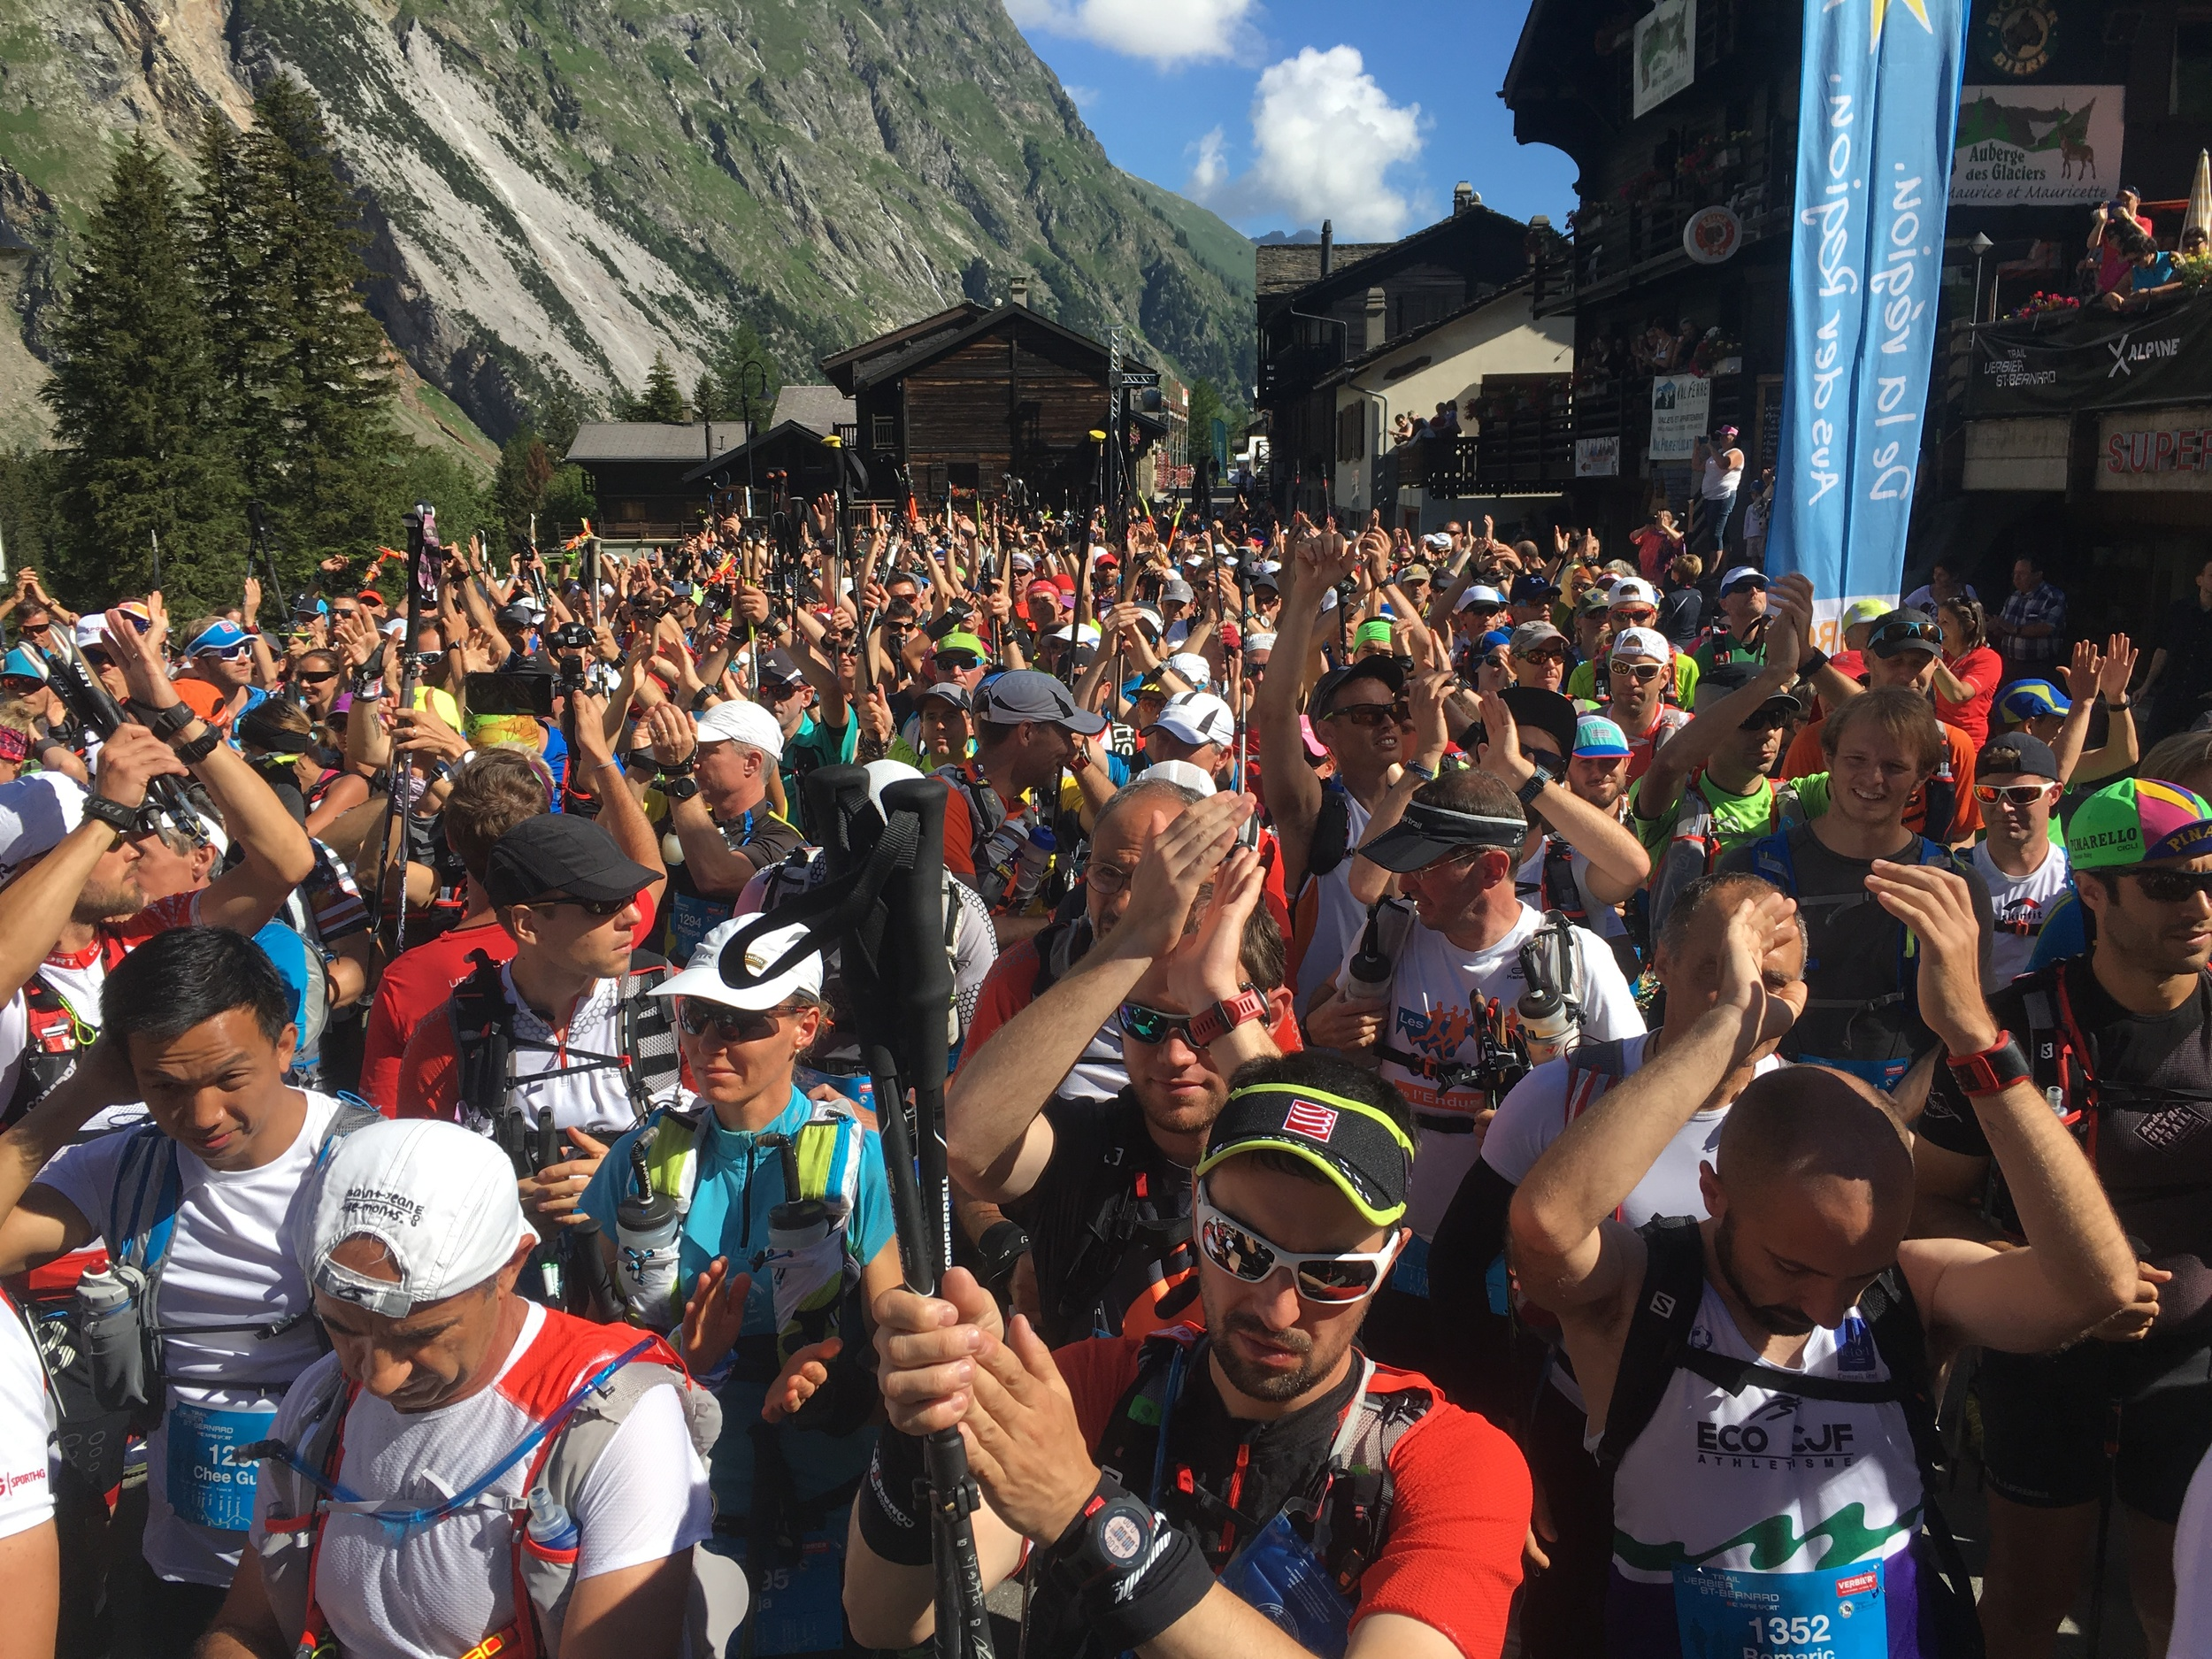 Verbier St. Bernard Ultra Race: July 7-9